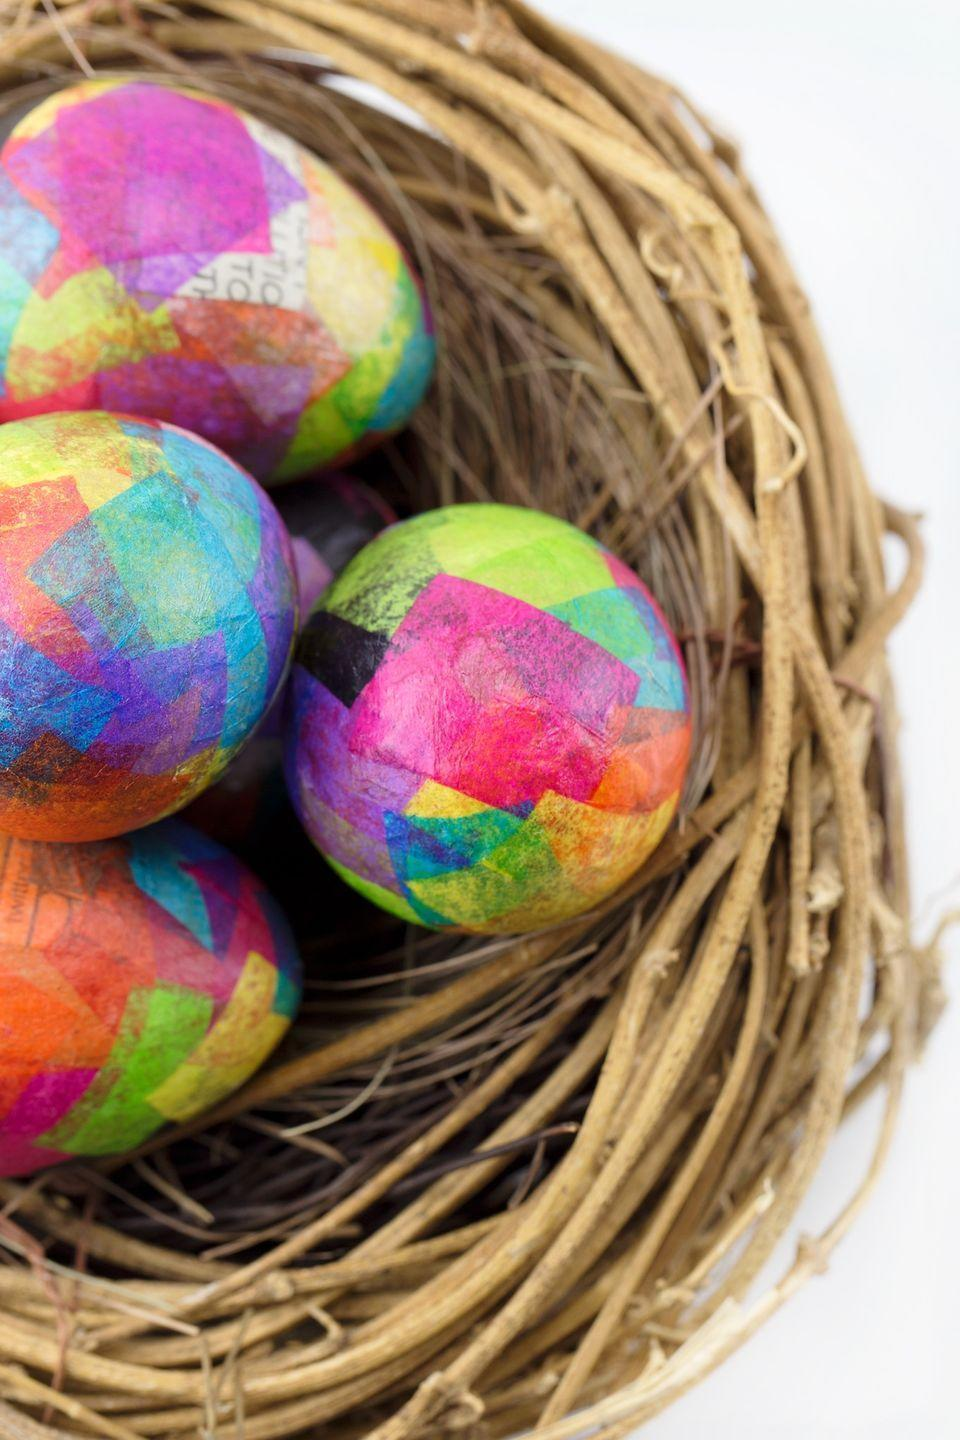 """<p>If traditional egg dyeing feels too been there, done that, use the papier-mâché technique to craft equally one-of-a-kind creations. </p><p><strong>Get the tutorial at <a href=""""https://www.firefliesandmudpies.com/papier-mache-easter-eggs/"""" rel=""""nofollow noopener"""" target=""""_blank"""" data-ylk=""""slk:Fireflies and Mud Pies"""" class=""""link rapid-noclick-resp"""">Fireflies and Mud Pies</a>.</strong> </p><p><a class=""""link rapid-noclick-resp"""" href=""""https://www.amazon.com/Mod-Podge-CS11303-Waterbase-Sealer/dp/B0009ILH8C/?tag=syn-yahoo-20&ascsubtag=%5Bartid%7C10050.g.1111%5Bsrc%7Cyahoo-us"""" rel=""""nofollow noopener"""" target=""""_blank"""" data-ylk=""""slk:SHOP MOD PODGE"""">SHOP MOD PODGE</a></p>"""